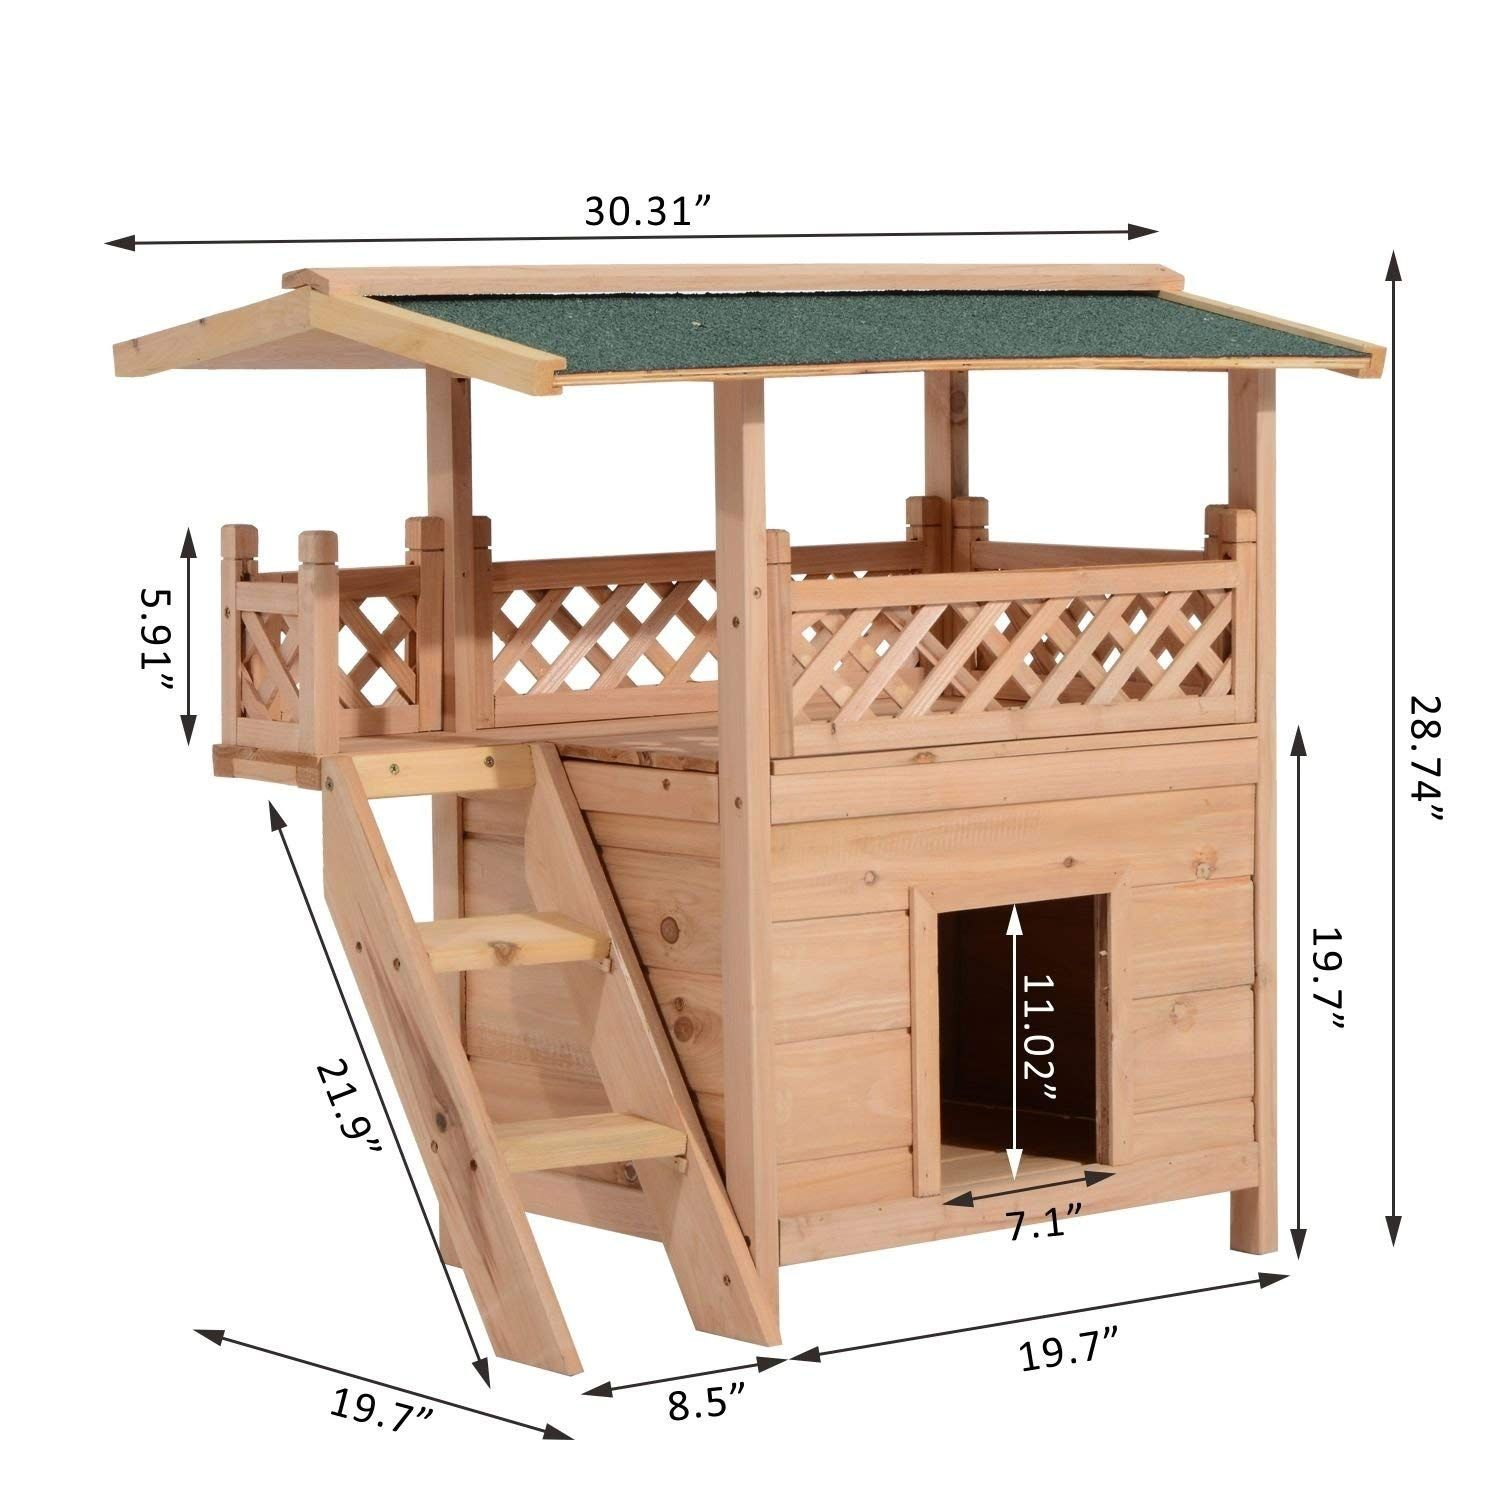 Pawhut Wooden Large Deluxe Elevated Indoor Outdoor Cat House With Porch And Balcony With Stairs Ad Deluxe Ad Dog House Plans Cat House Plans Dog House Diy